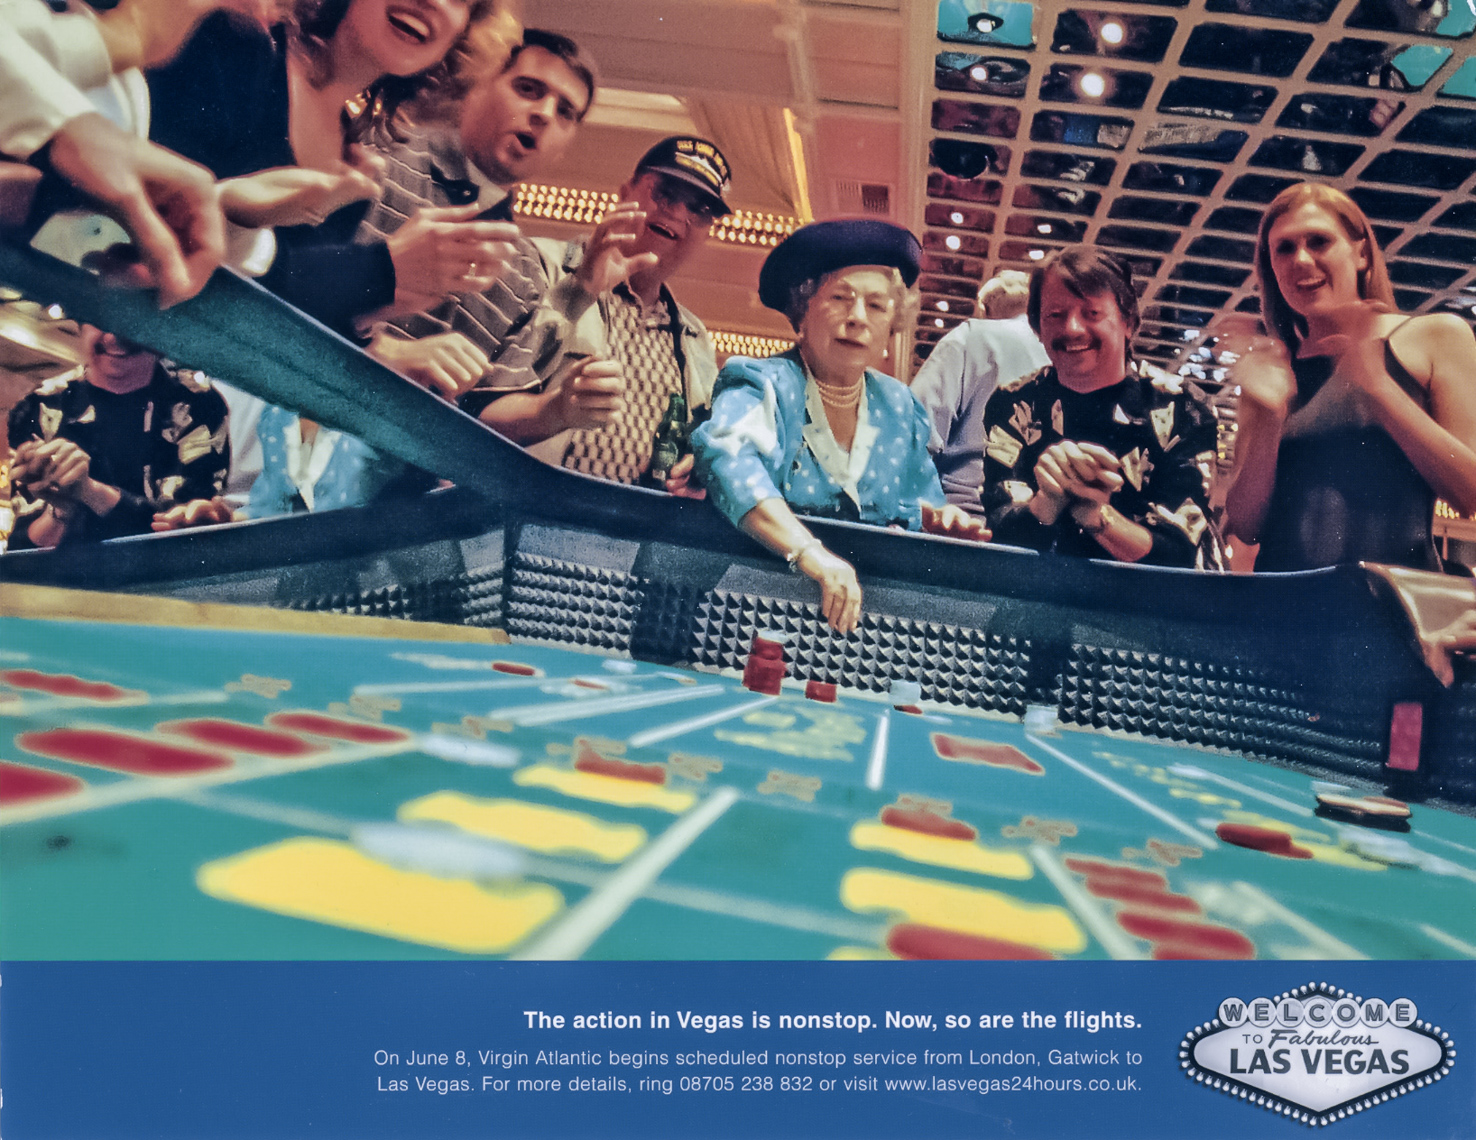 Ad for Virgin Atlantic %22 nonstops to Las Vegas %22  Queen shooting craps,  agency- R & R Partners